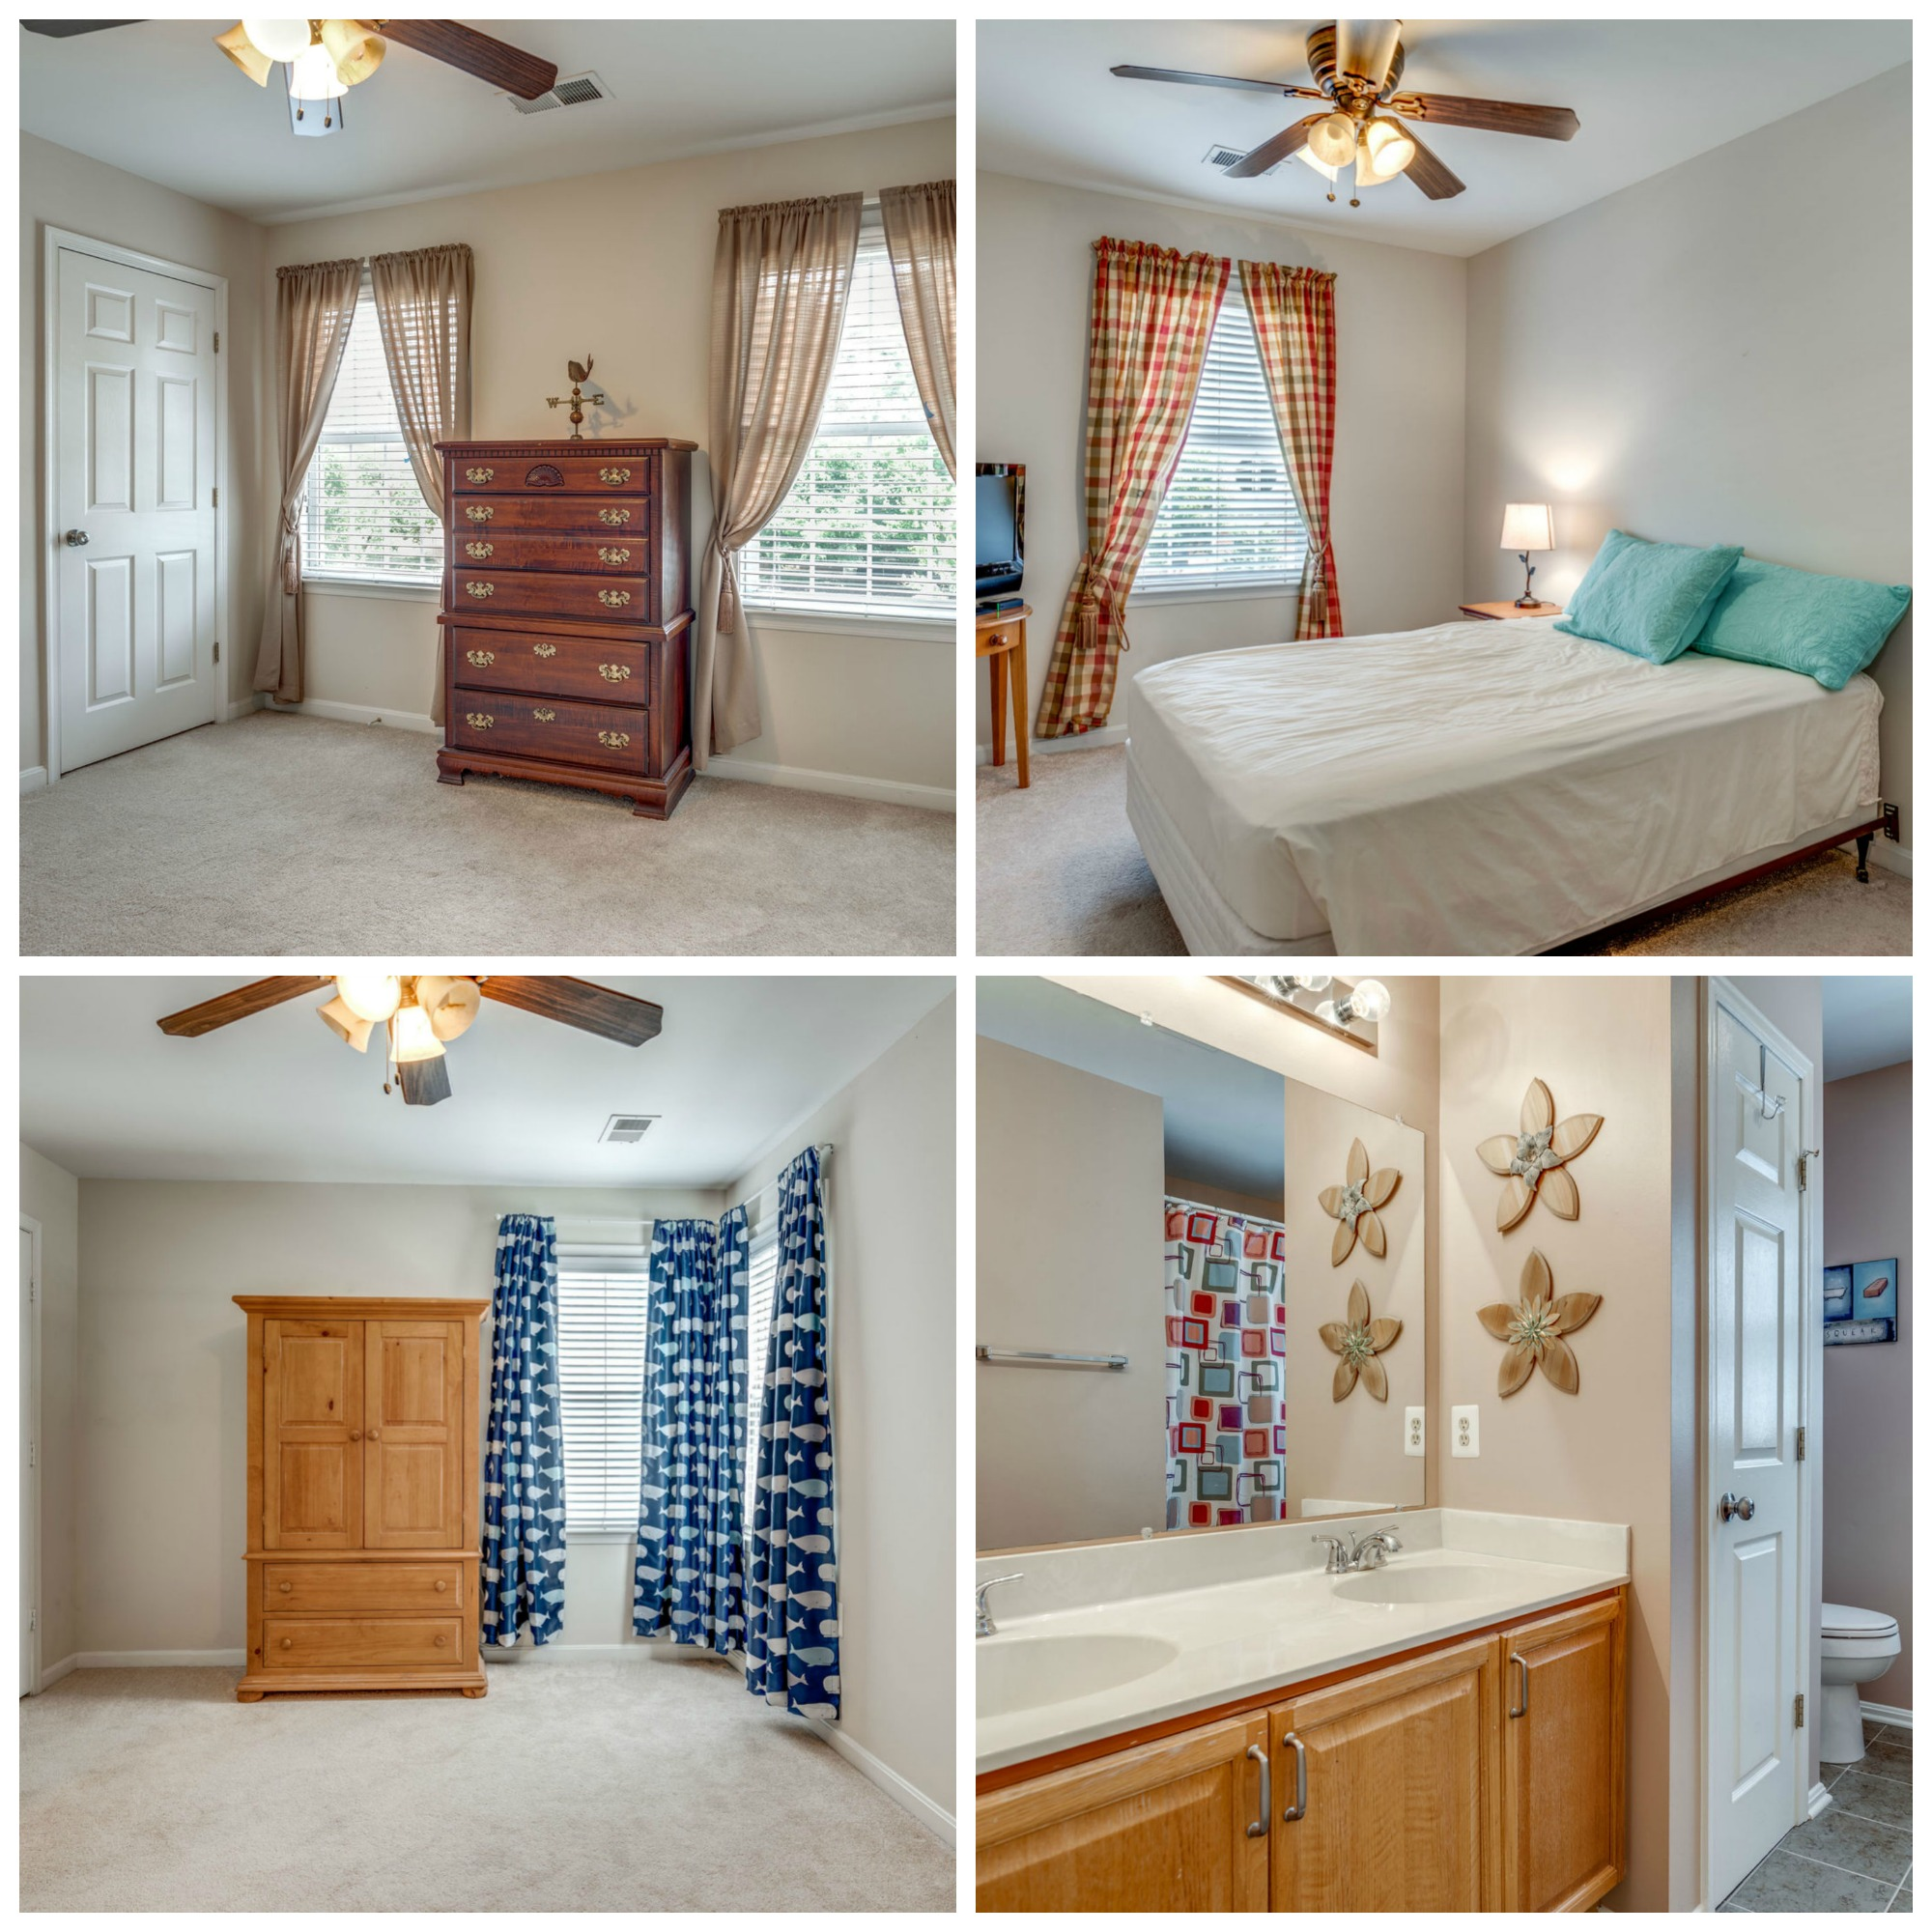 327 Old Waterford Rd NW, Leesburg - Additional Bedrooms and Bathroom